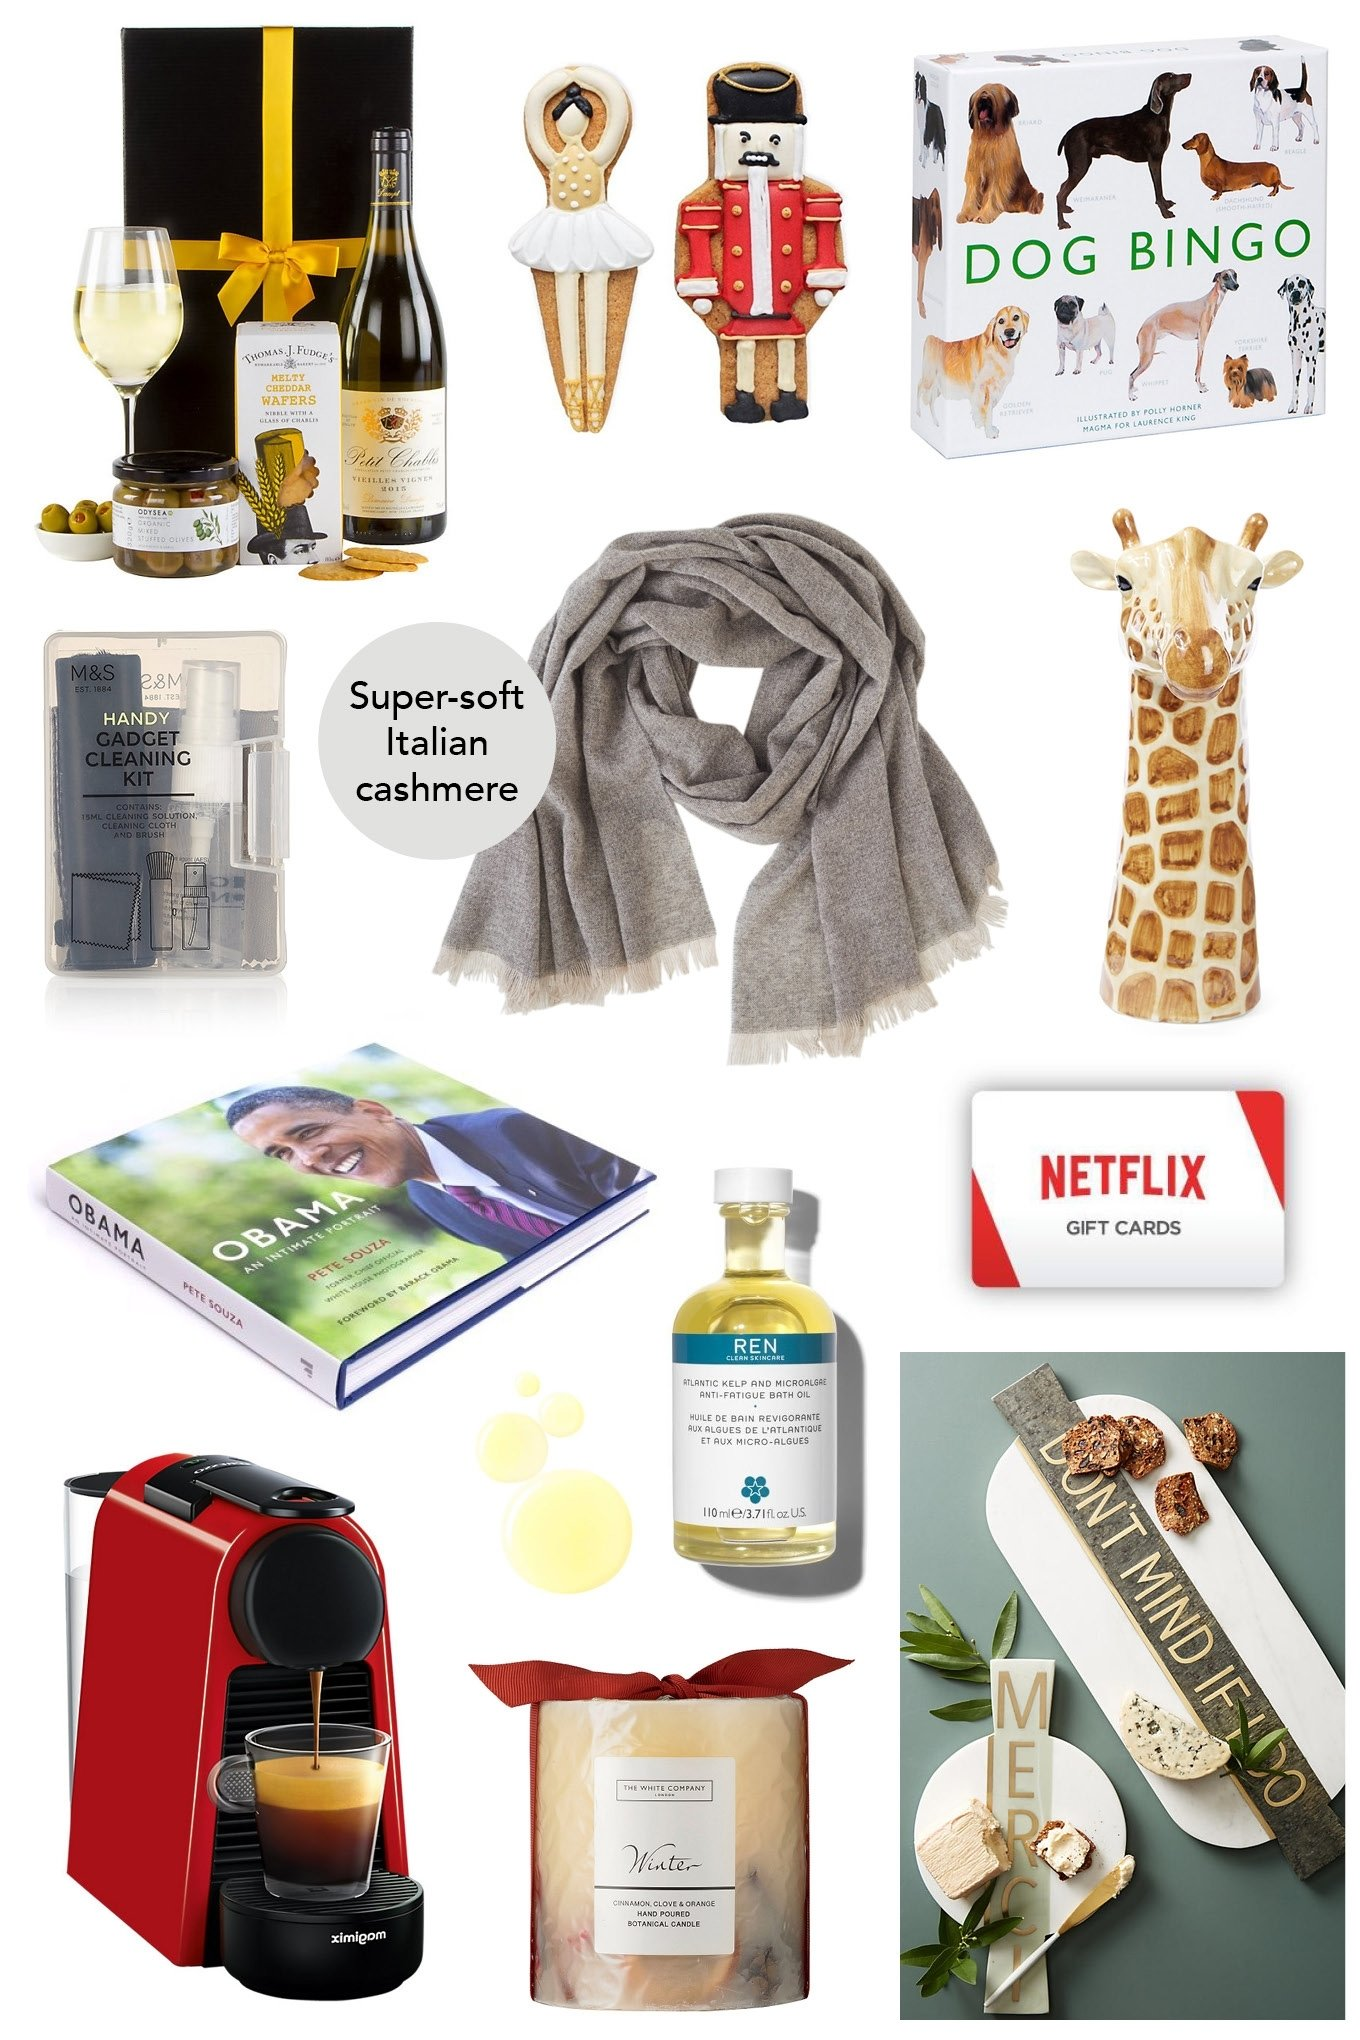 10 Most Recommended Holiday Gift Ideas For Grandparents christmas gift ideas for parents and grandparents cocos tea party 1 2021